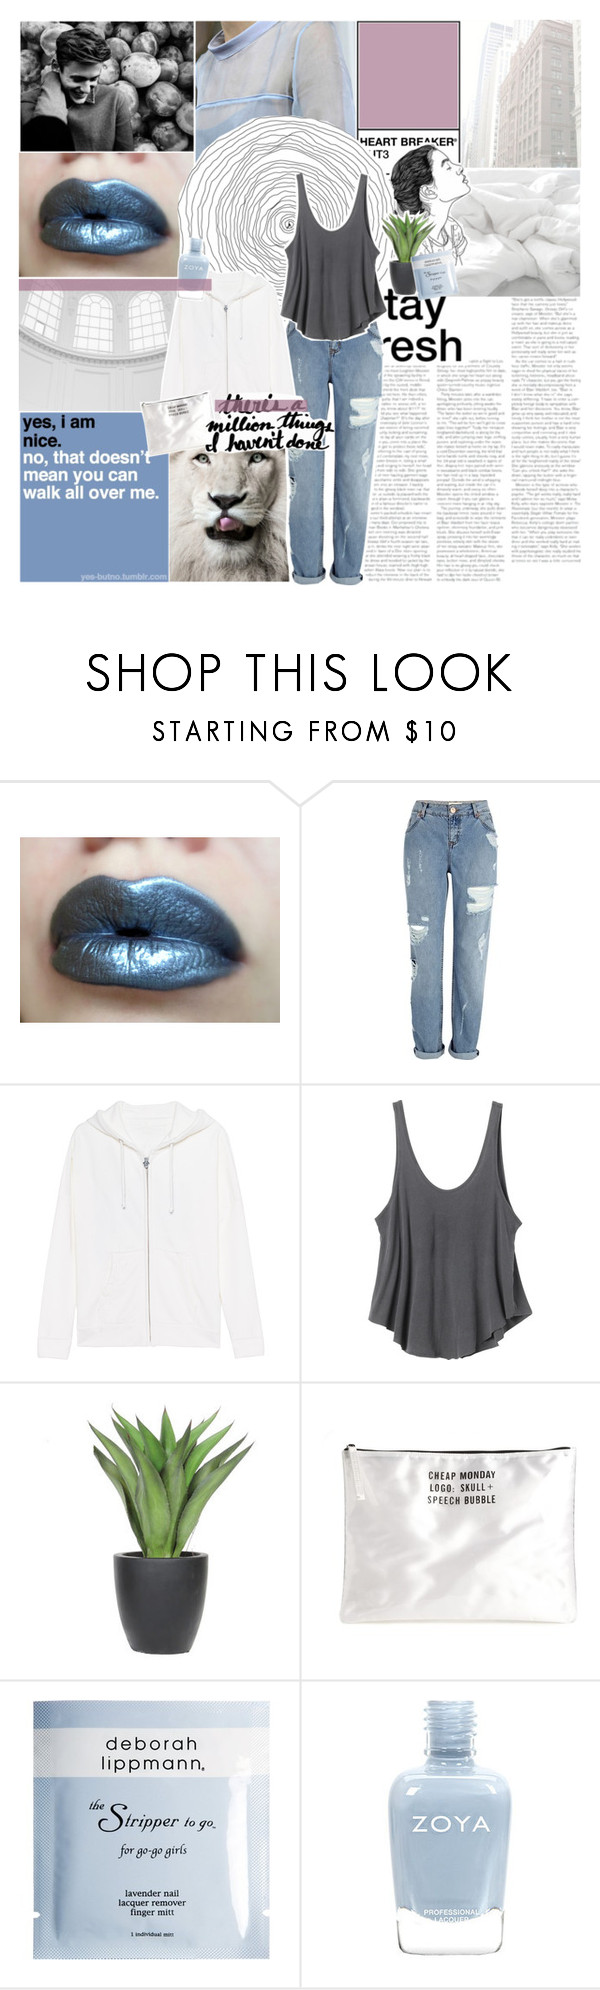 """""""there's a million things i haven't done --"""" by burning-citylights ❤ liked on Polyvore featuring River Island, True Religion, RVCA, Lux-Art Silks, Cheap Monday, Deborah Lippmann, Zoya and magazinesets"""